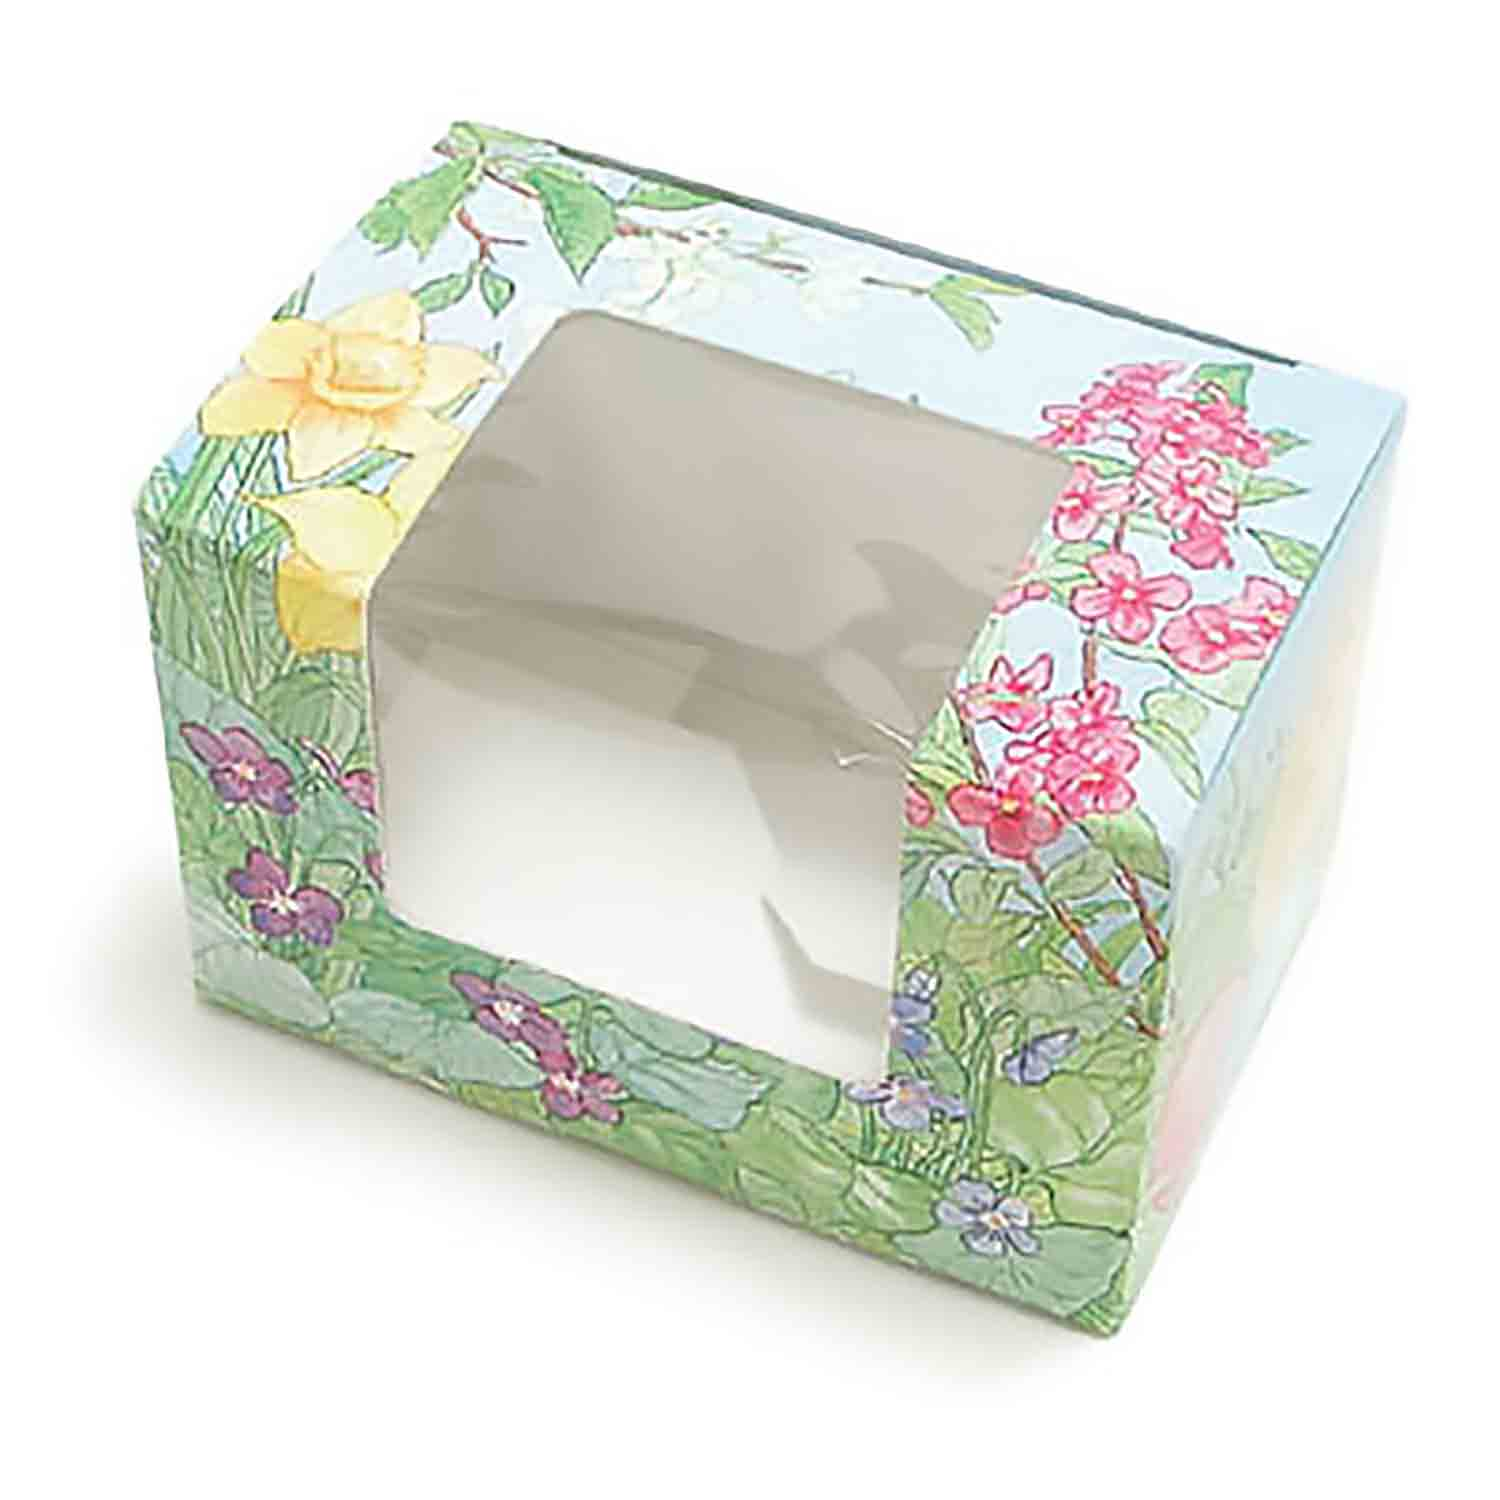 2 lb. Easter Garden Egg Candy Box with Window